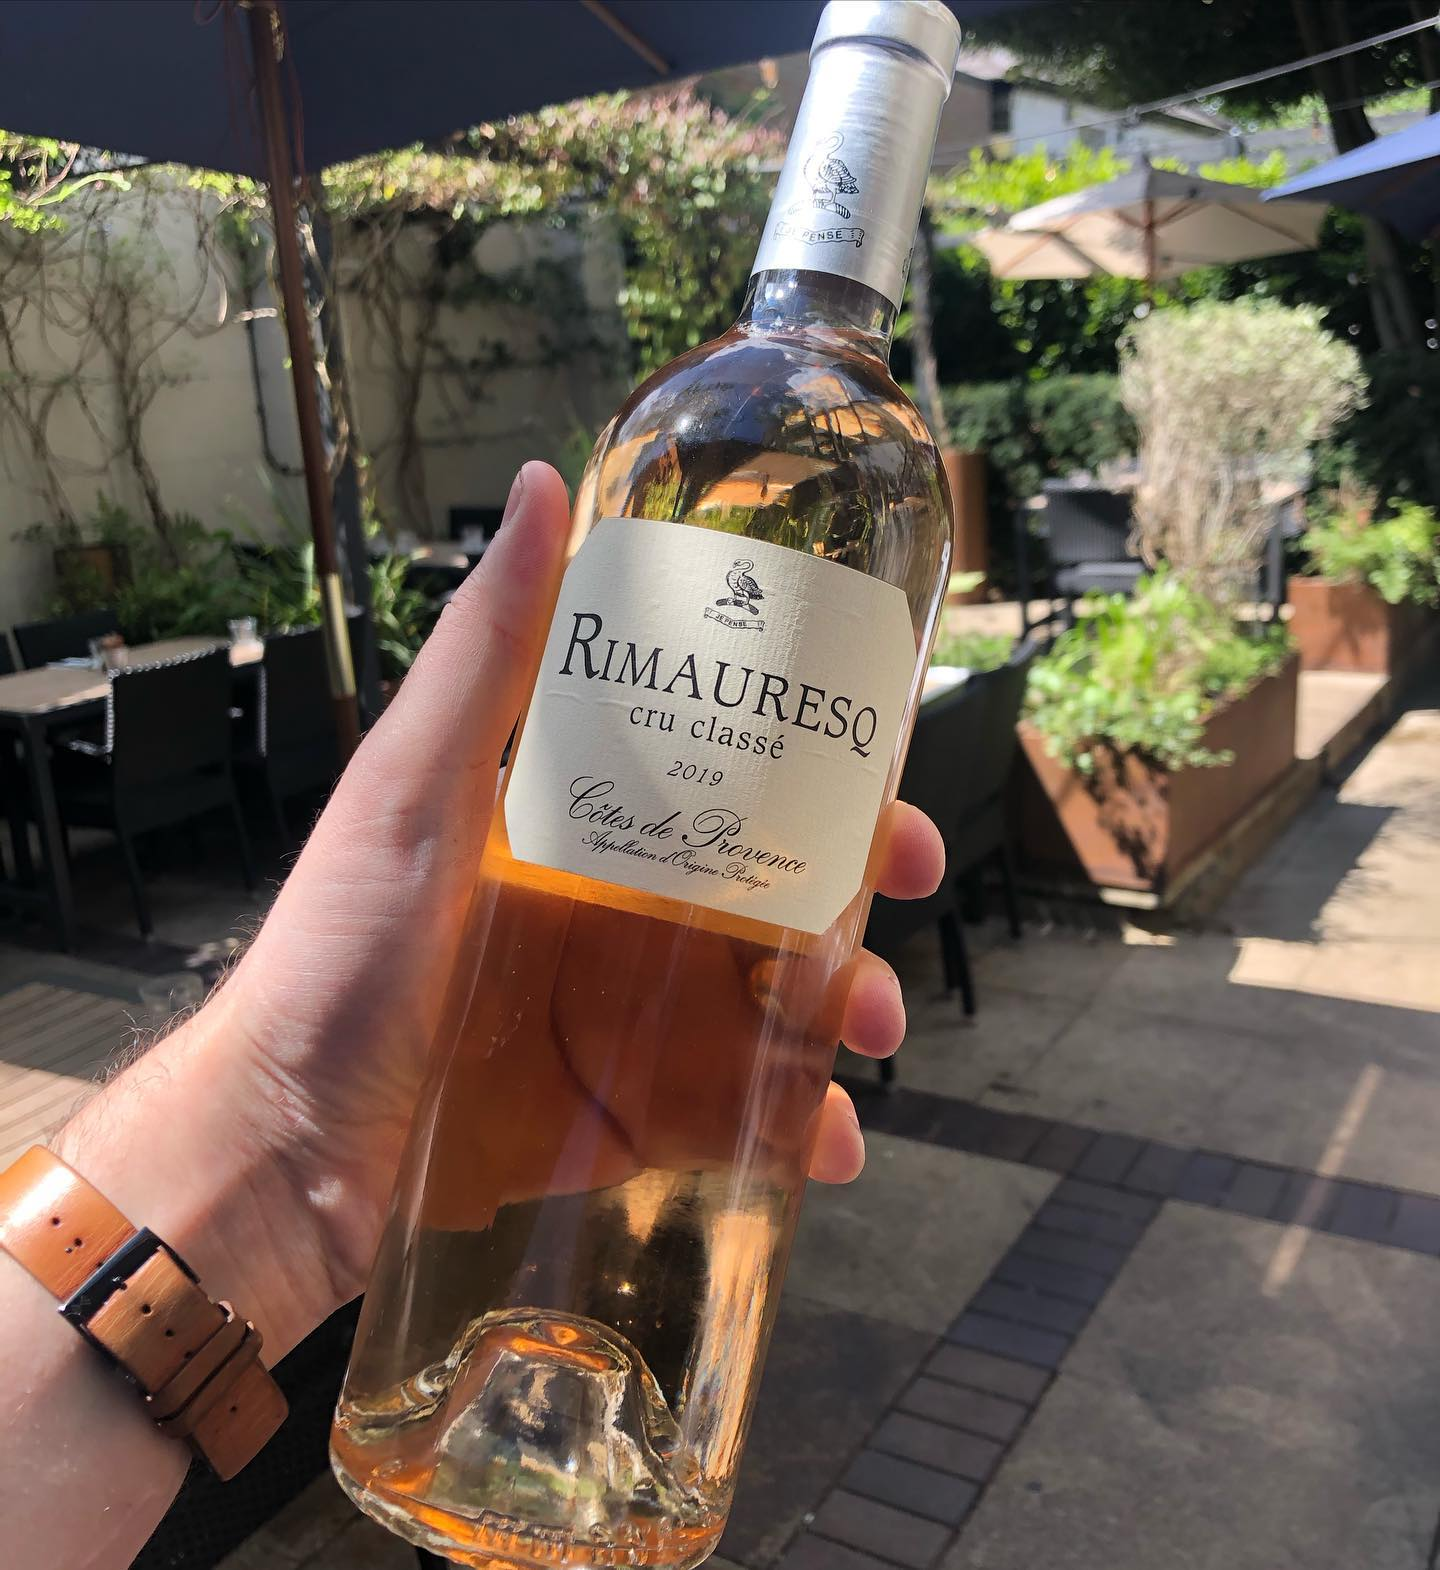 It's 100% the day for this. Cotes de Provence, cru classe, 2019.